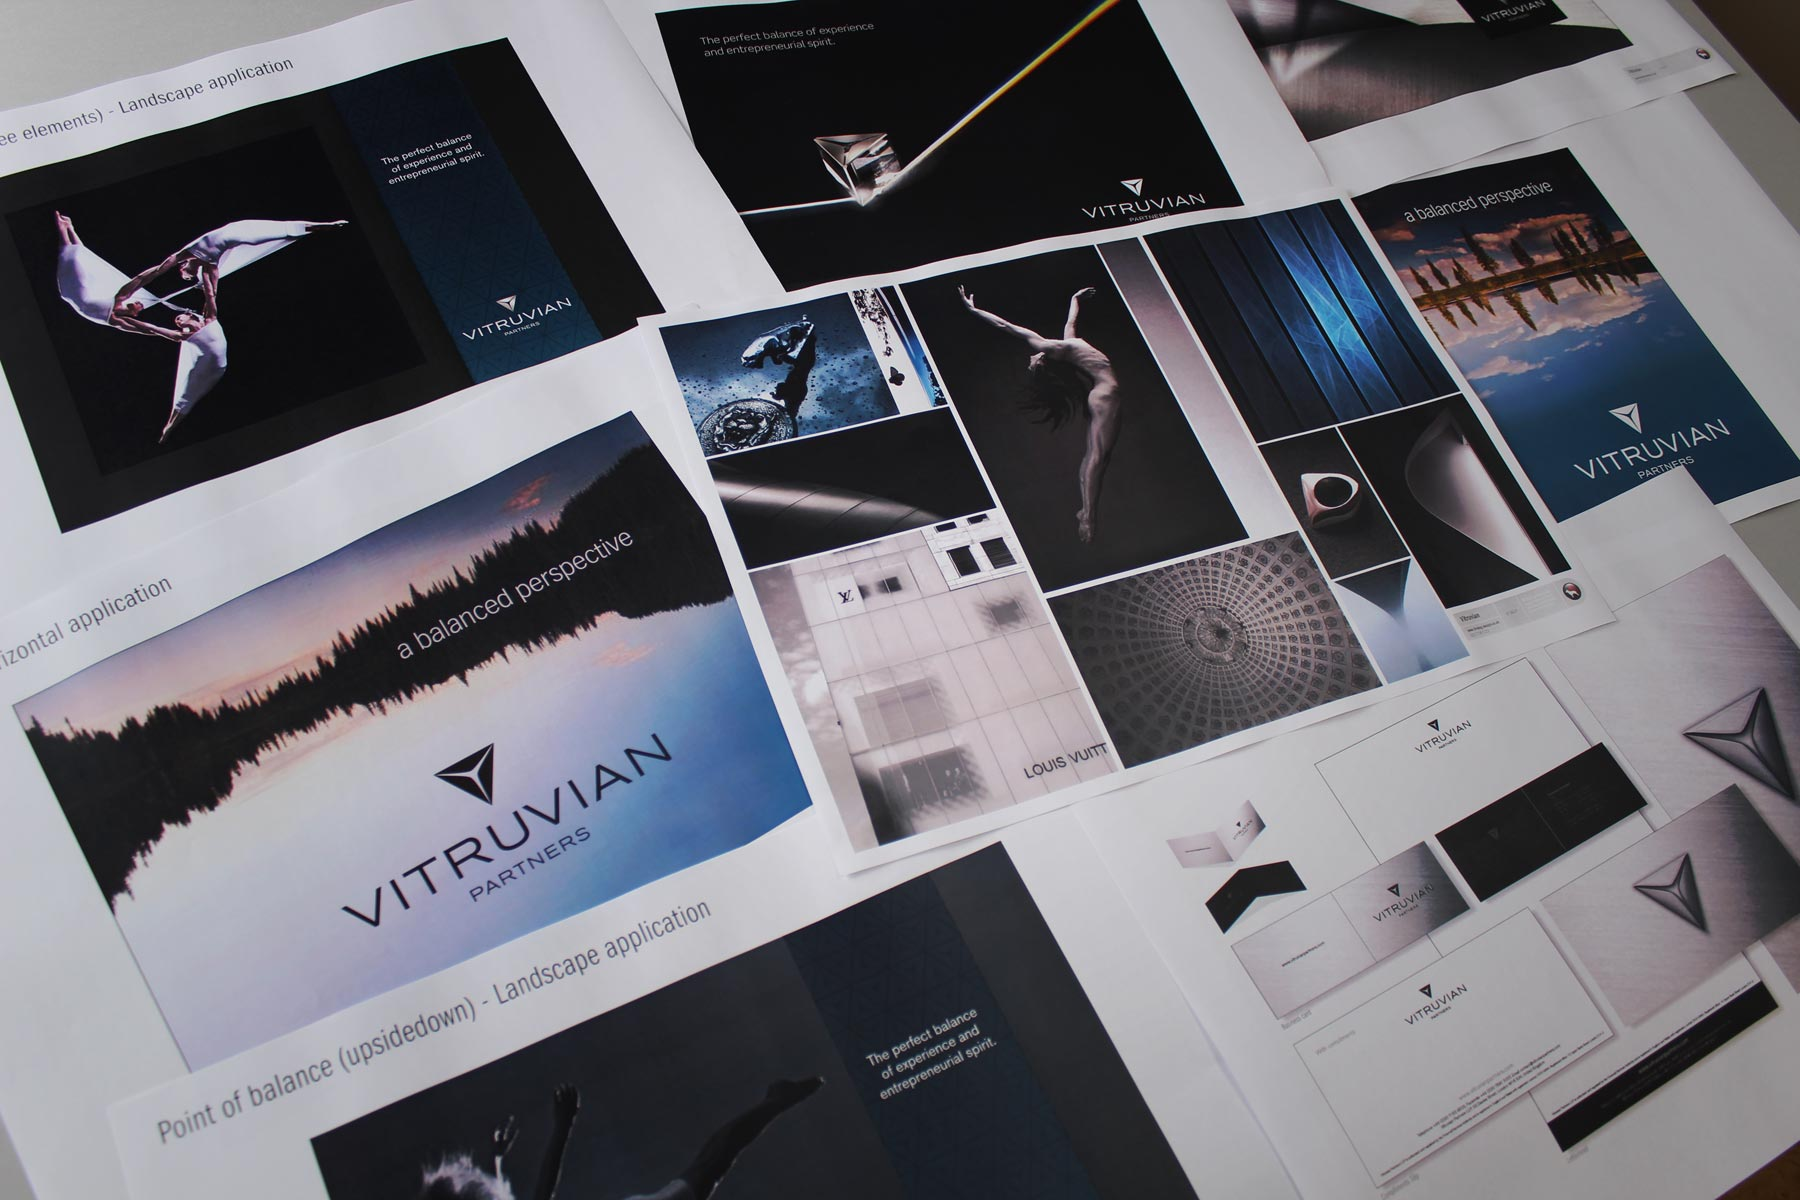 Early on, we struck upon the idea of a balanced perspective, a key business value. The development of the brand concept played with the idea of visual balance and how we could relate it back to this proposition.